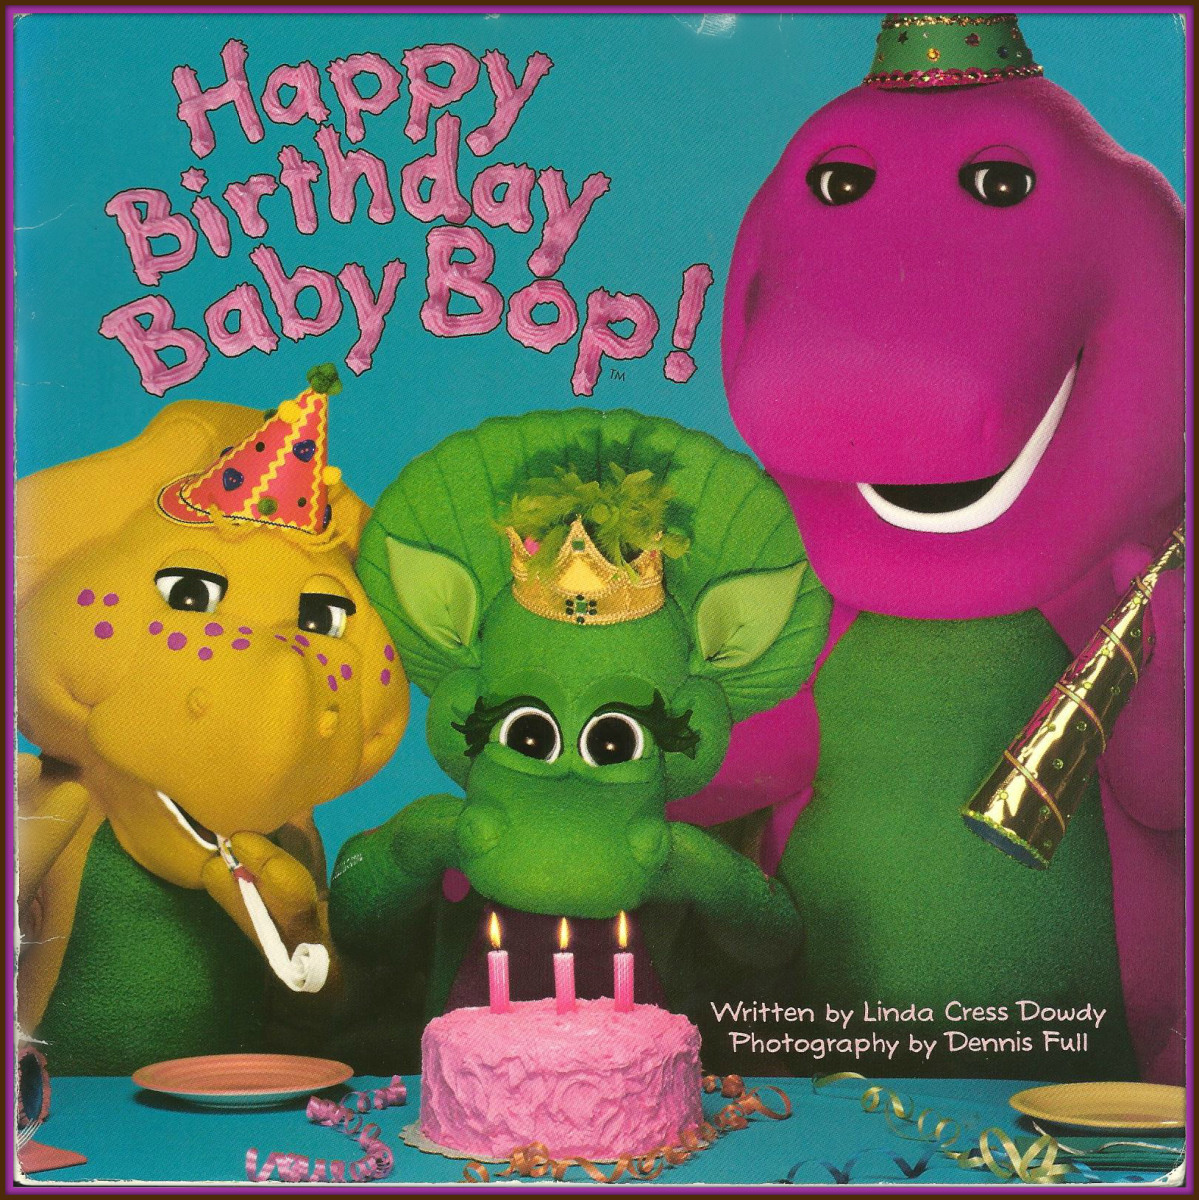 They play games, open presents, have cake, and much more!  ... The story characters are Barney, Baby Bop and  BJ ... This book was included in Barney's Sharing & Caring Treasury.